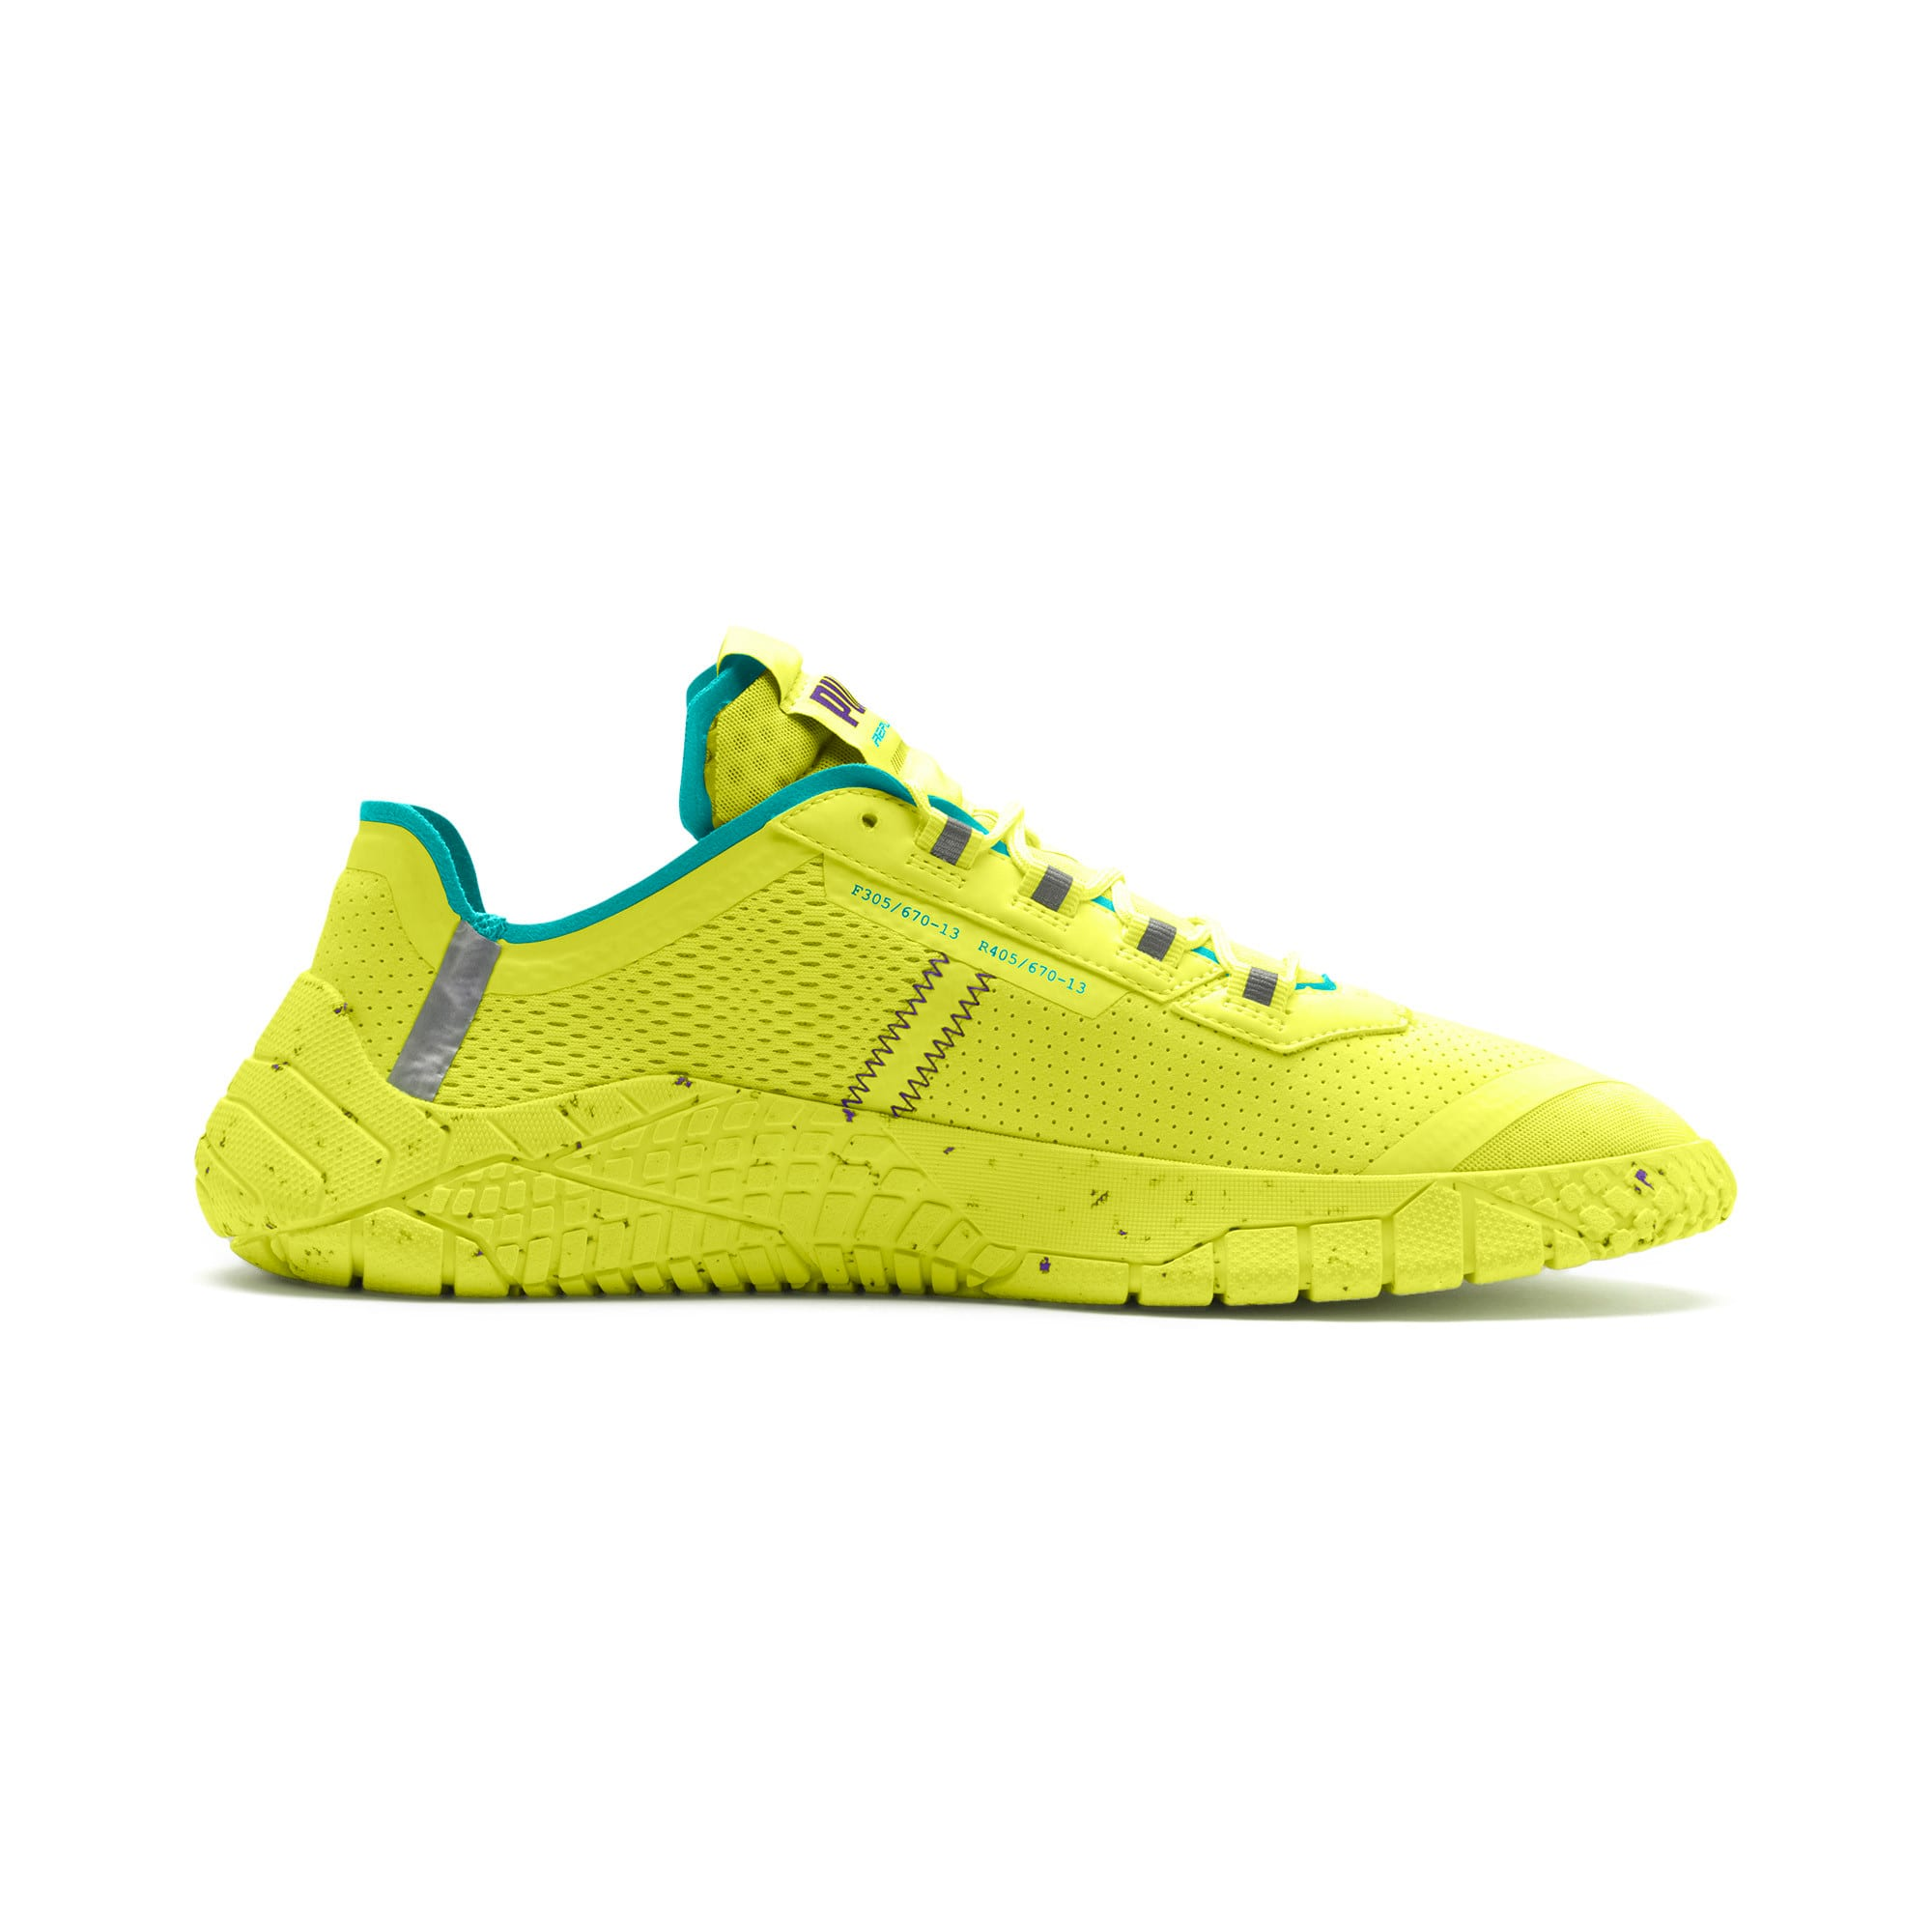 Thumbnail 5 of Replicat-X Fluro Trainers, Fzy Ylw-Blu Trqse-Prpl Glmr, medium